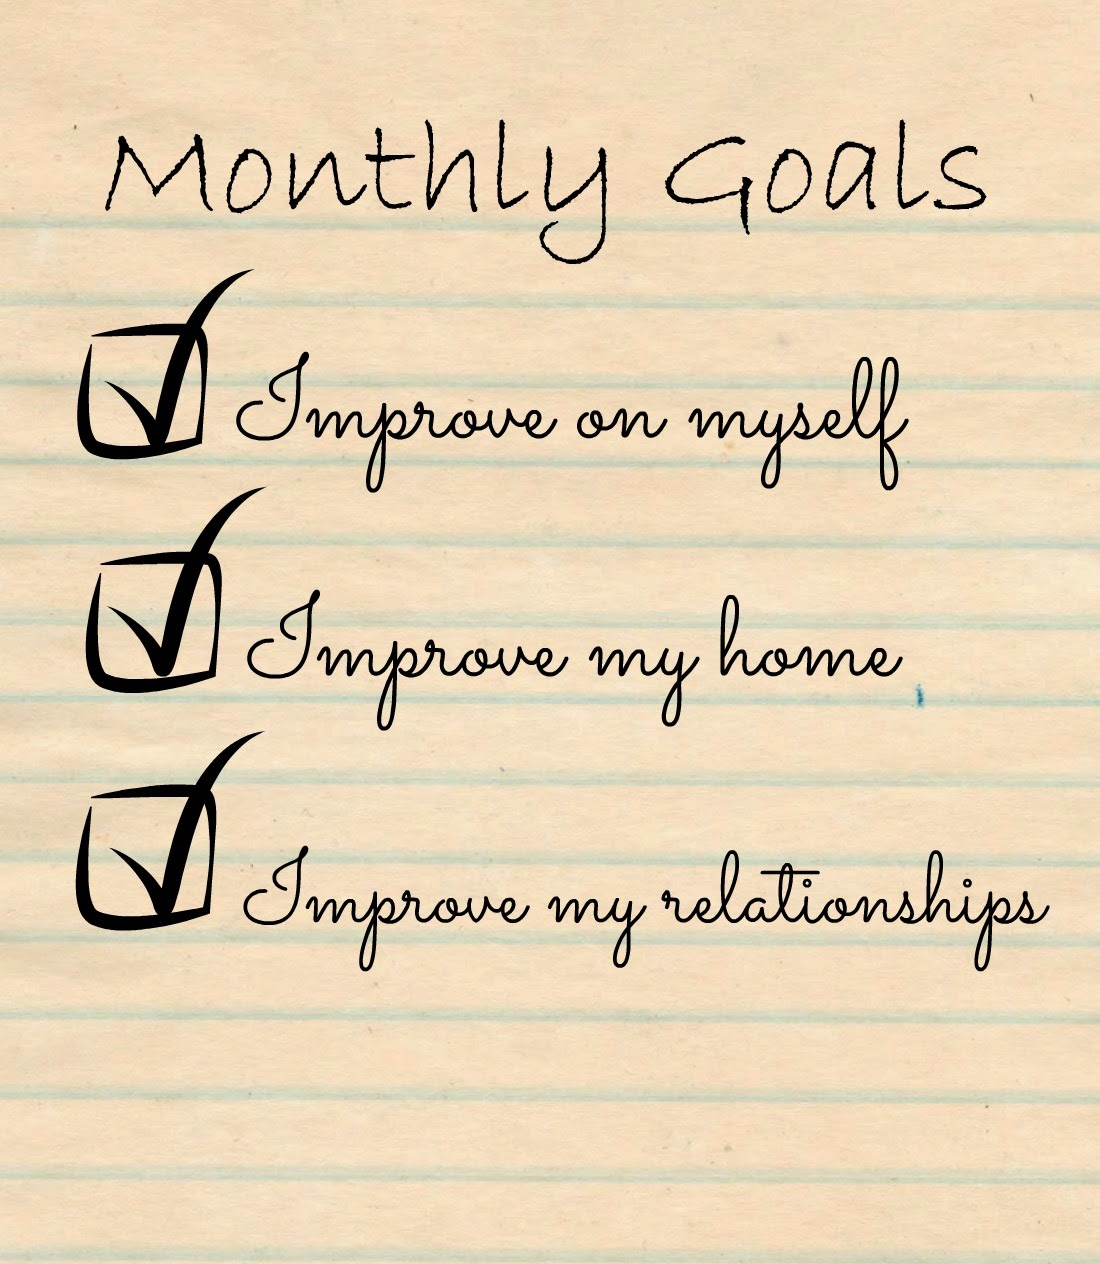 Seeking Sandy February Goals